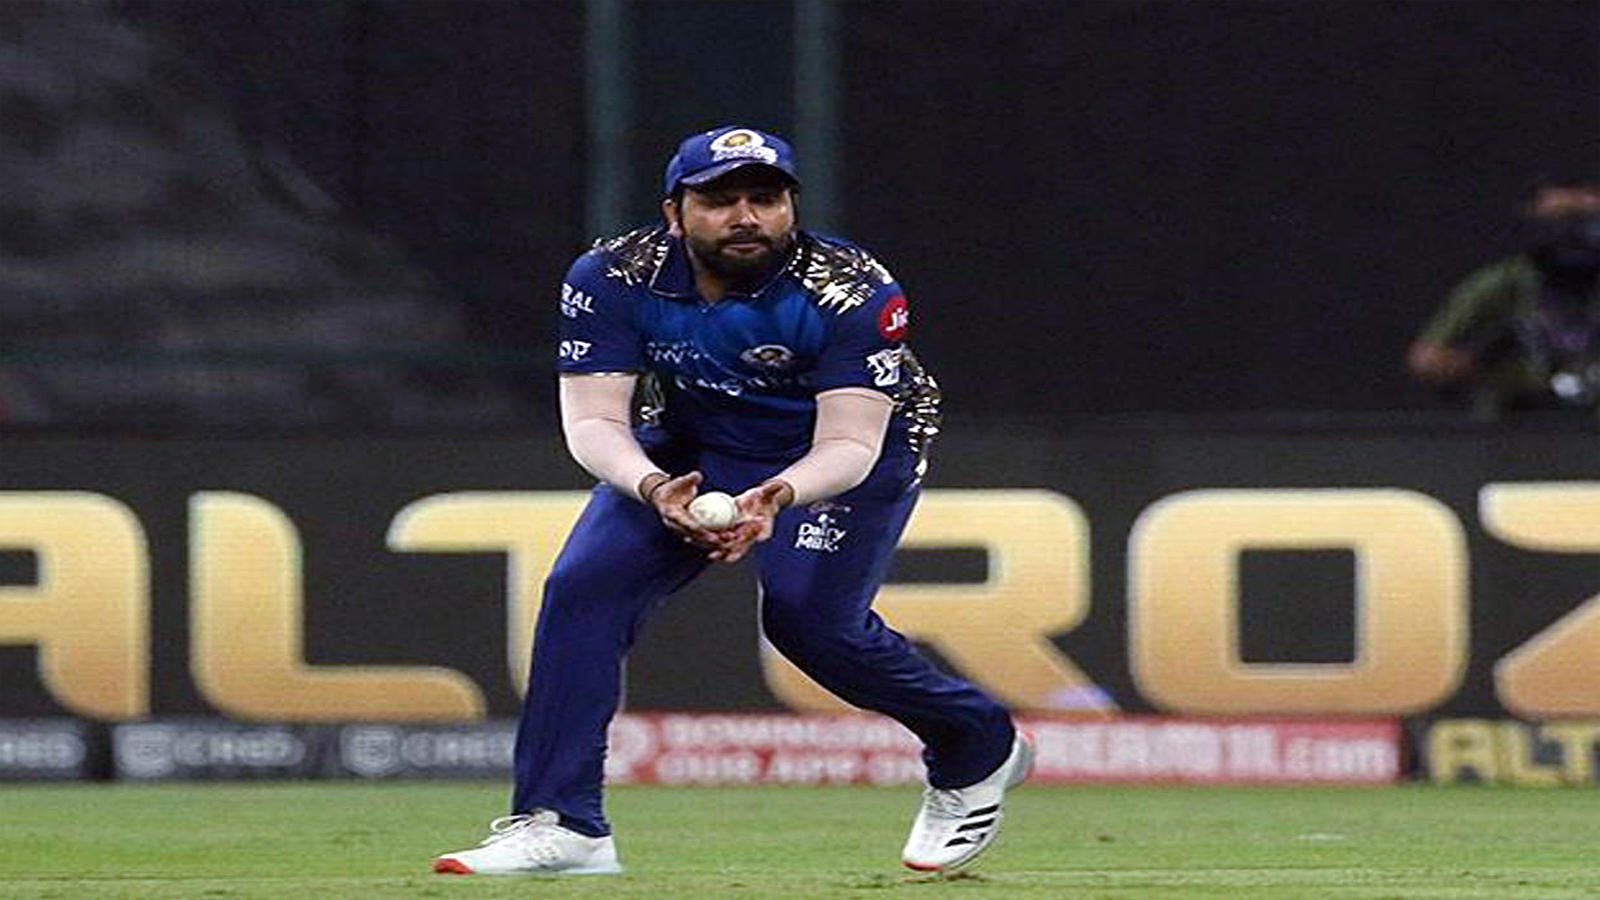 ipl-2020-rohit-sharma-nearing-match-fitness-with-non-stop-training